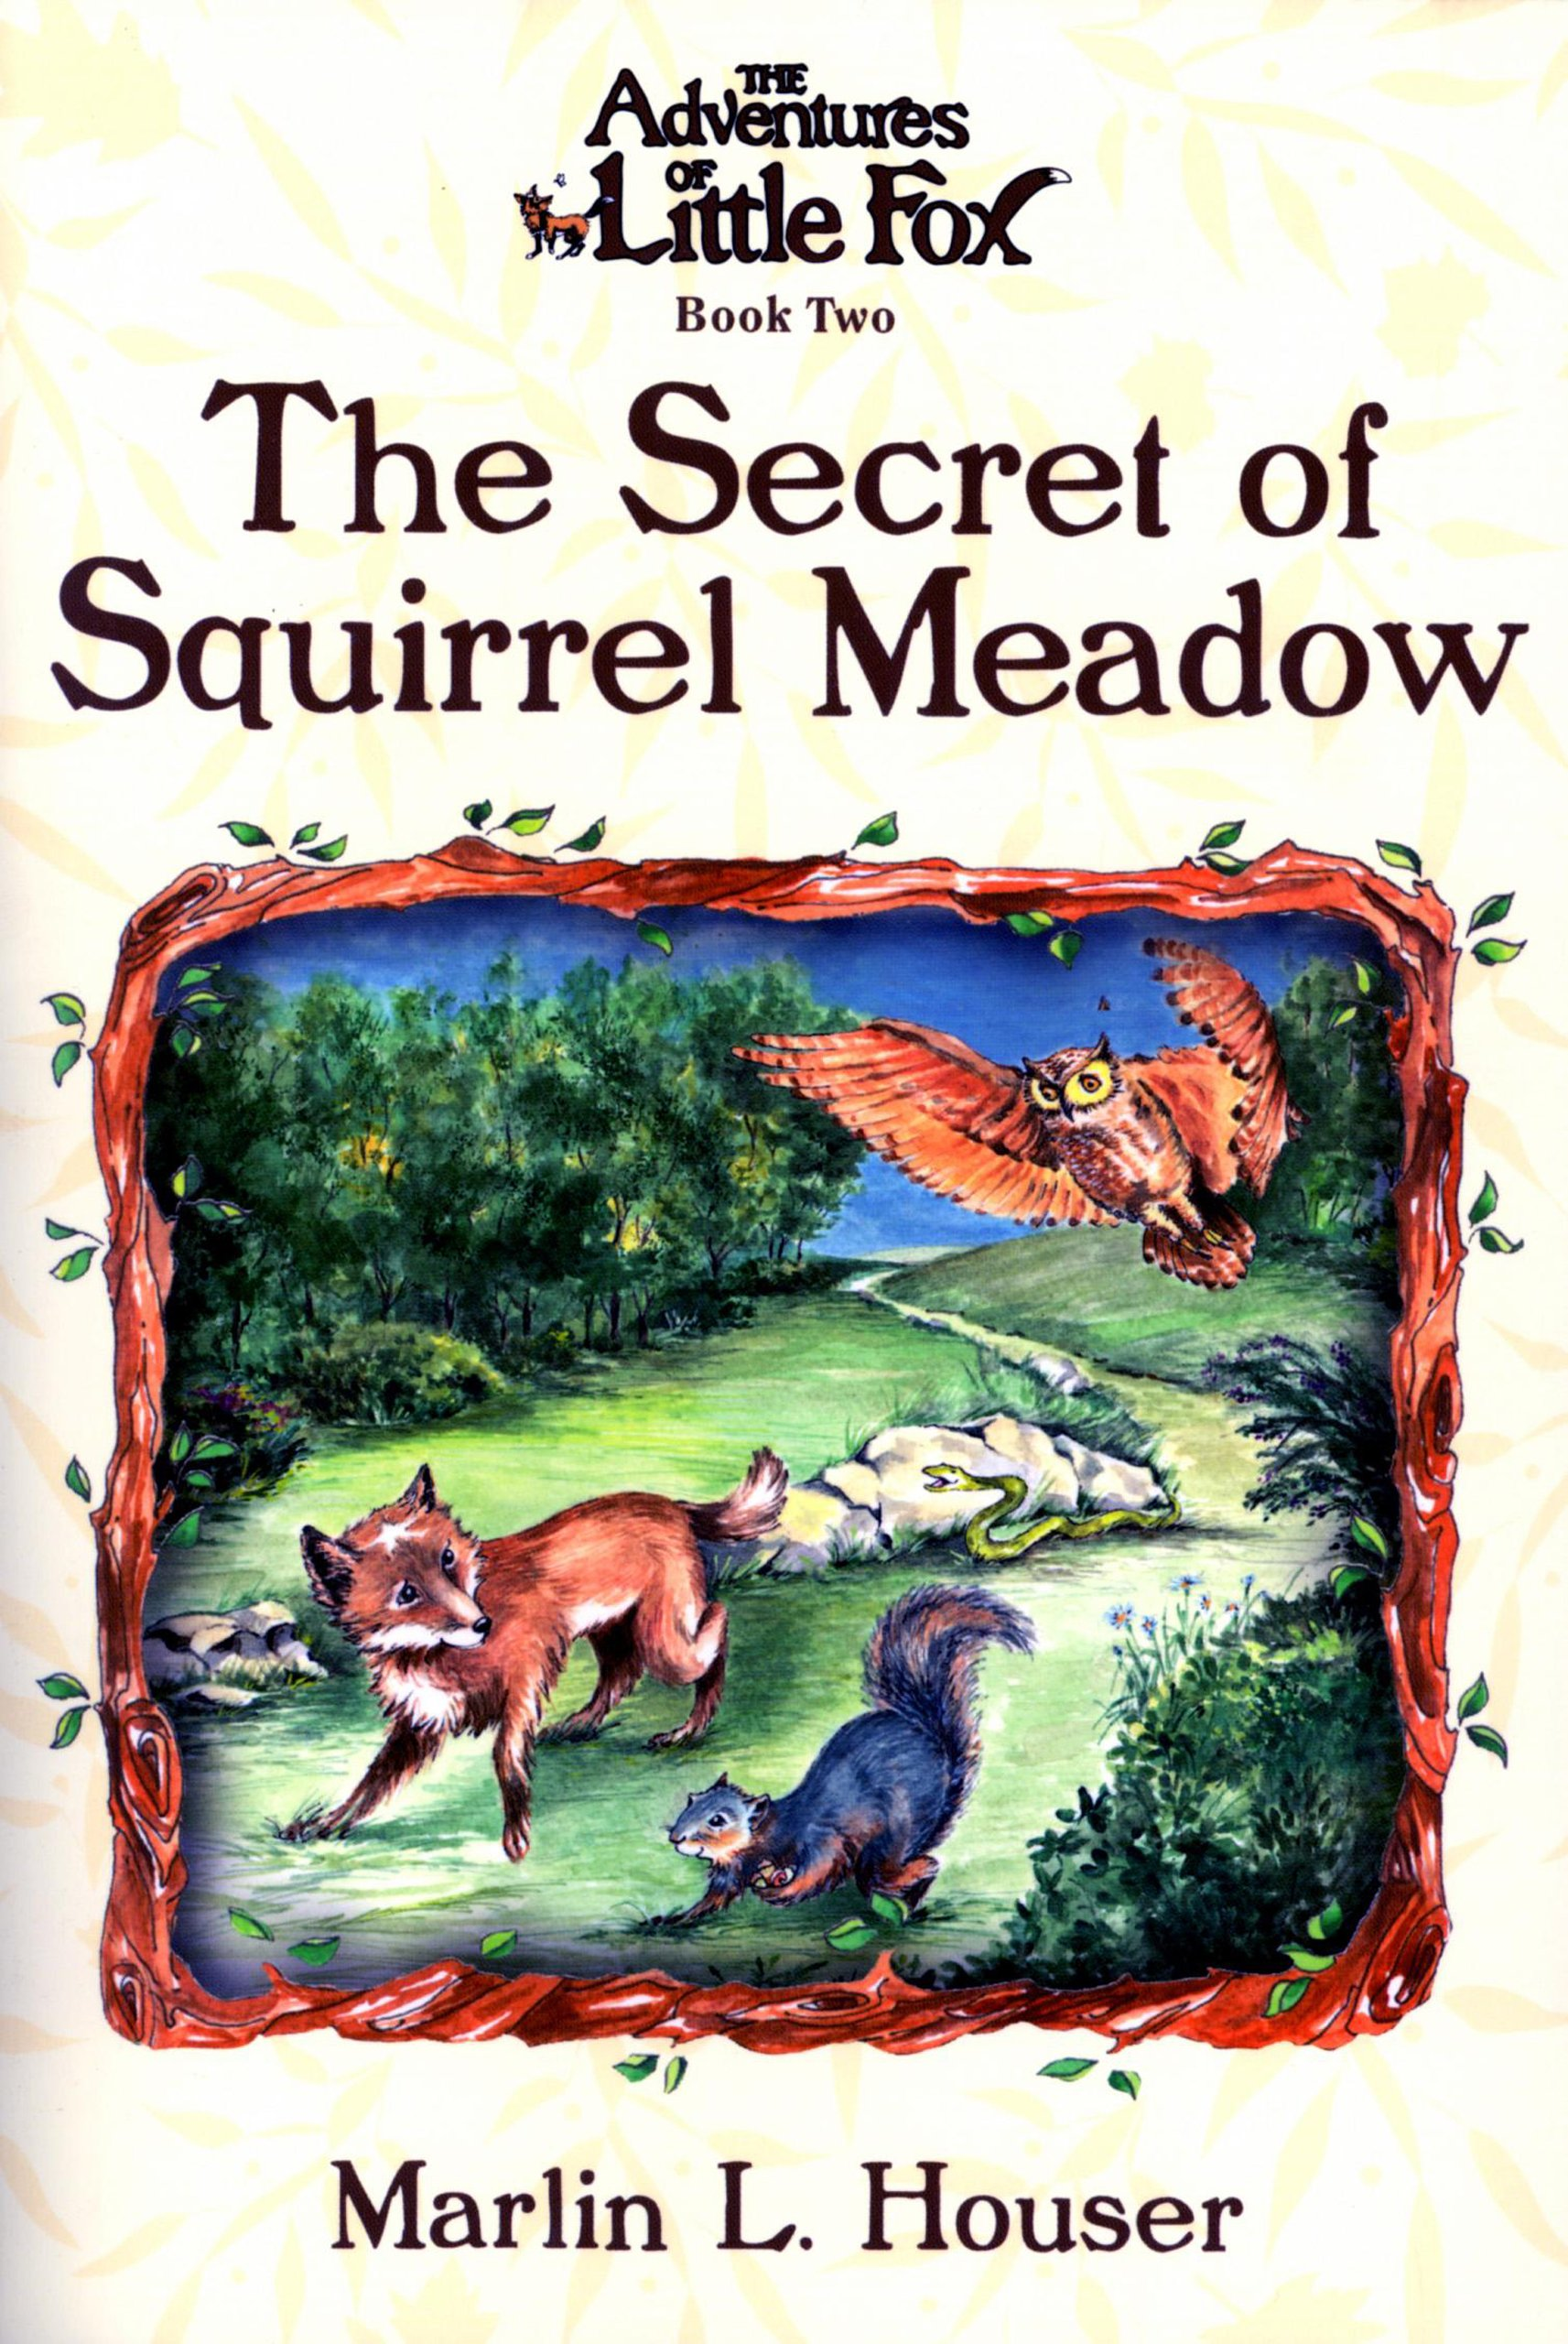 Download The Adventures of Little Fox, Book Two, The Secret of Squirrel Meadow pdf epub